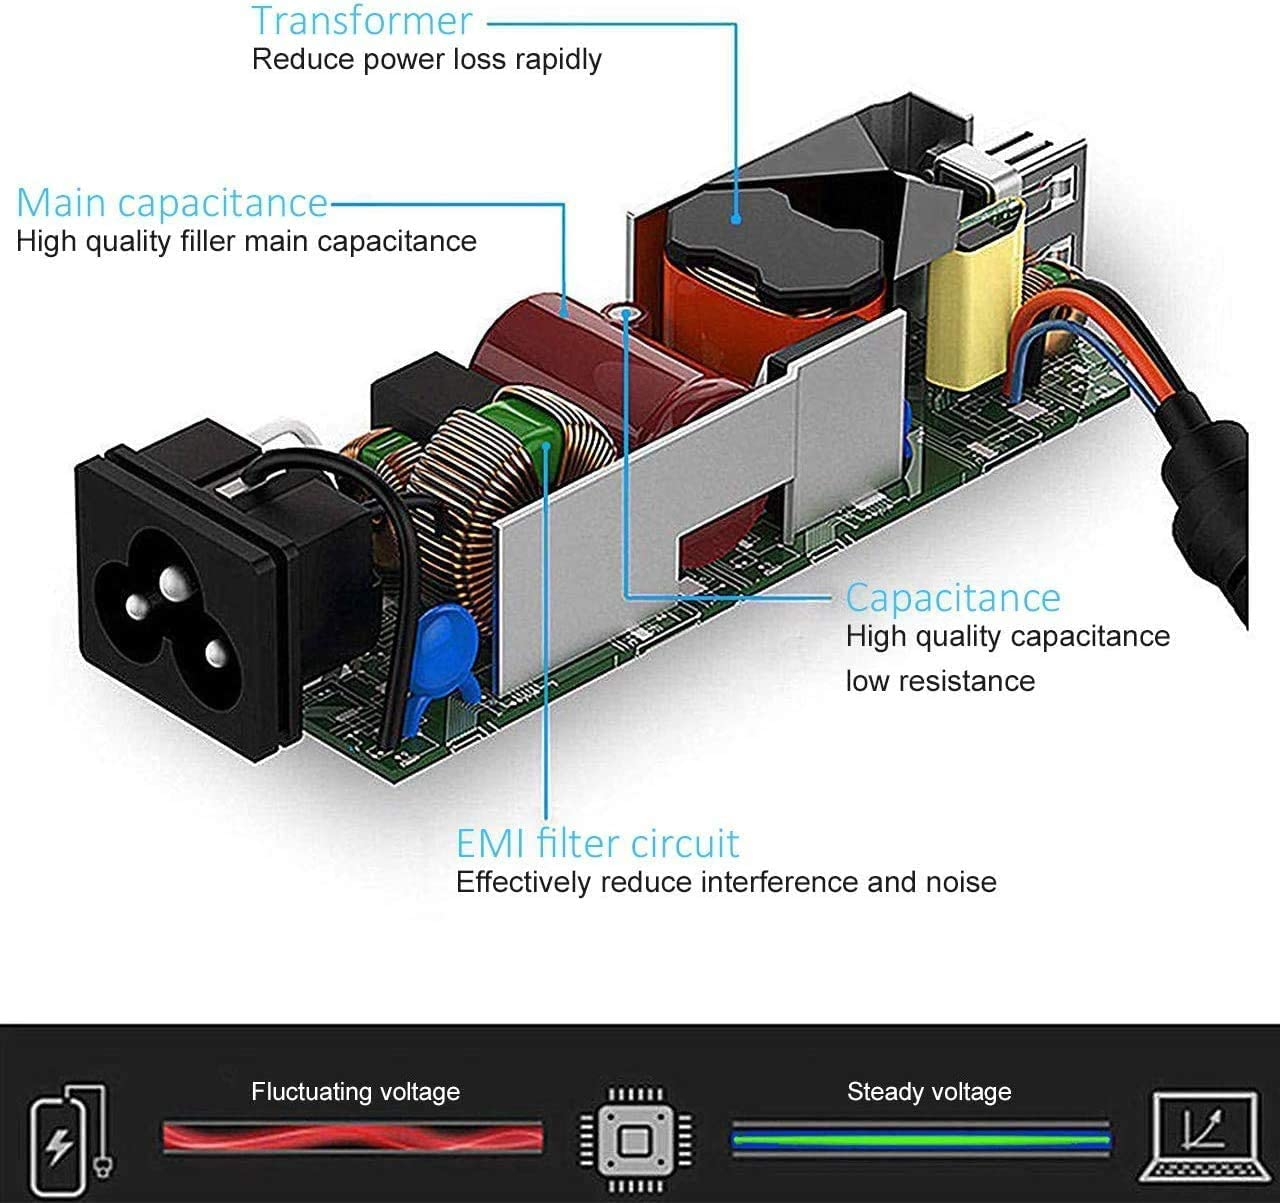 400 4.5 E-4.5; eZip Trailz Electric Bike Motor Bicycle Parts with 3-Pin XLR Connector ELECBRAiN 24V 0.6A Electric Scooter Battery Charger Cable for eZip 750 4.0 E750 900 500 E500 E400 450